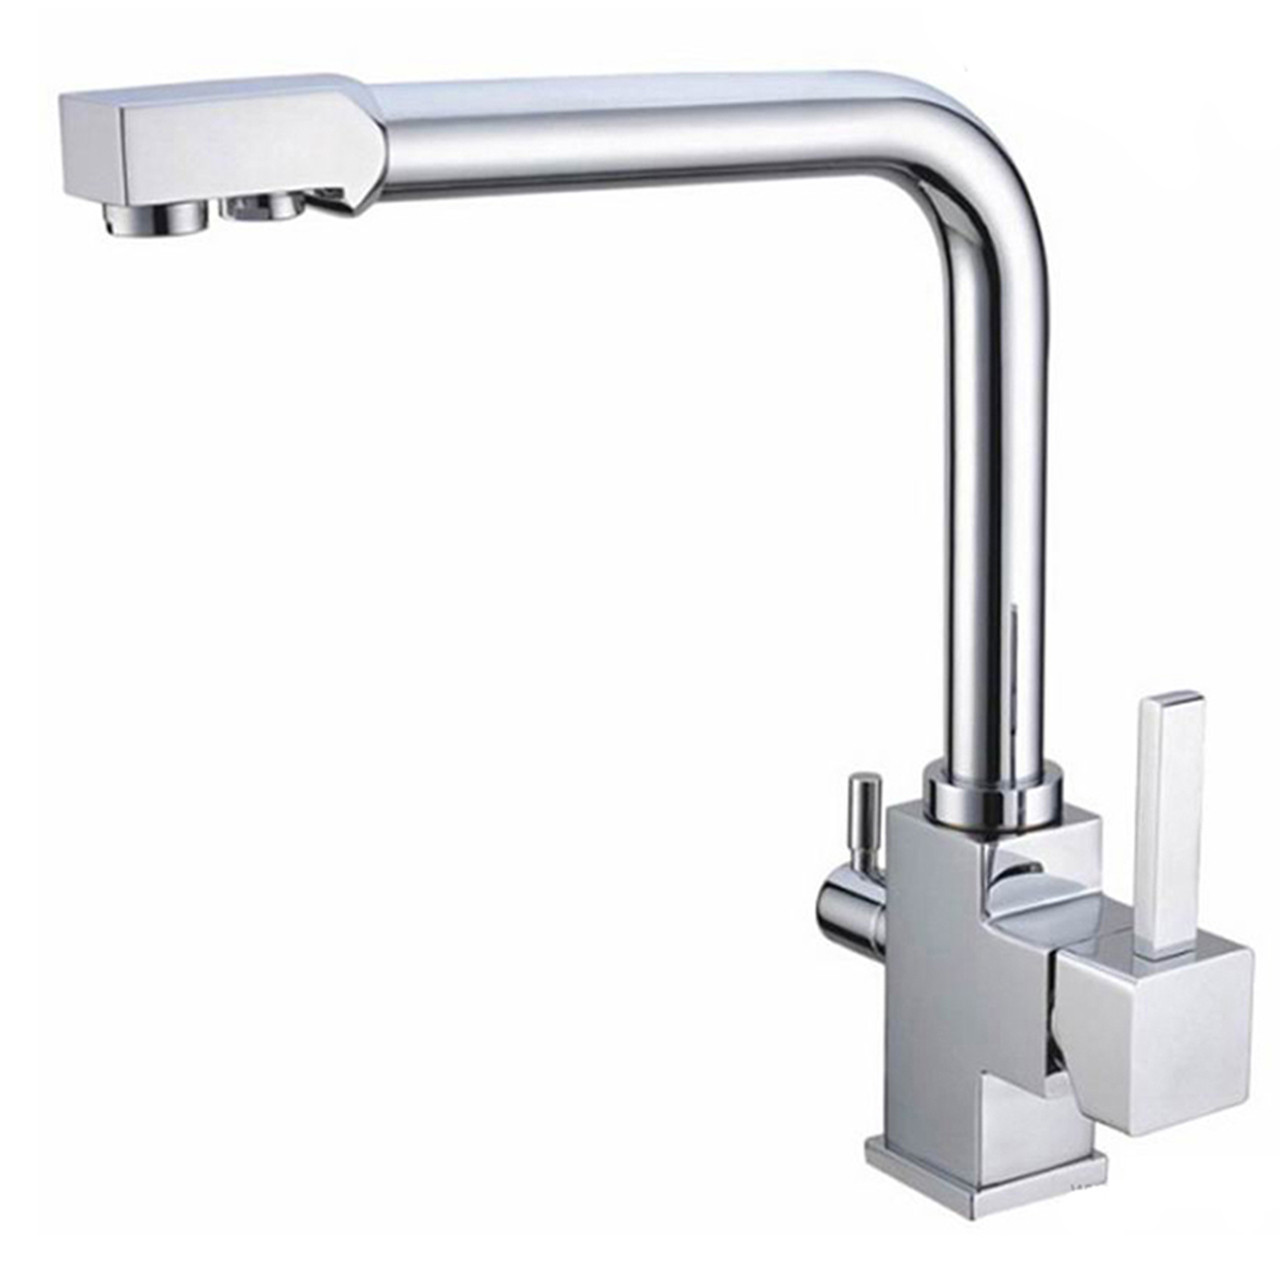 Merveilleux Three Way Faucet